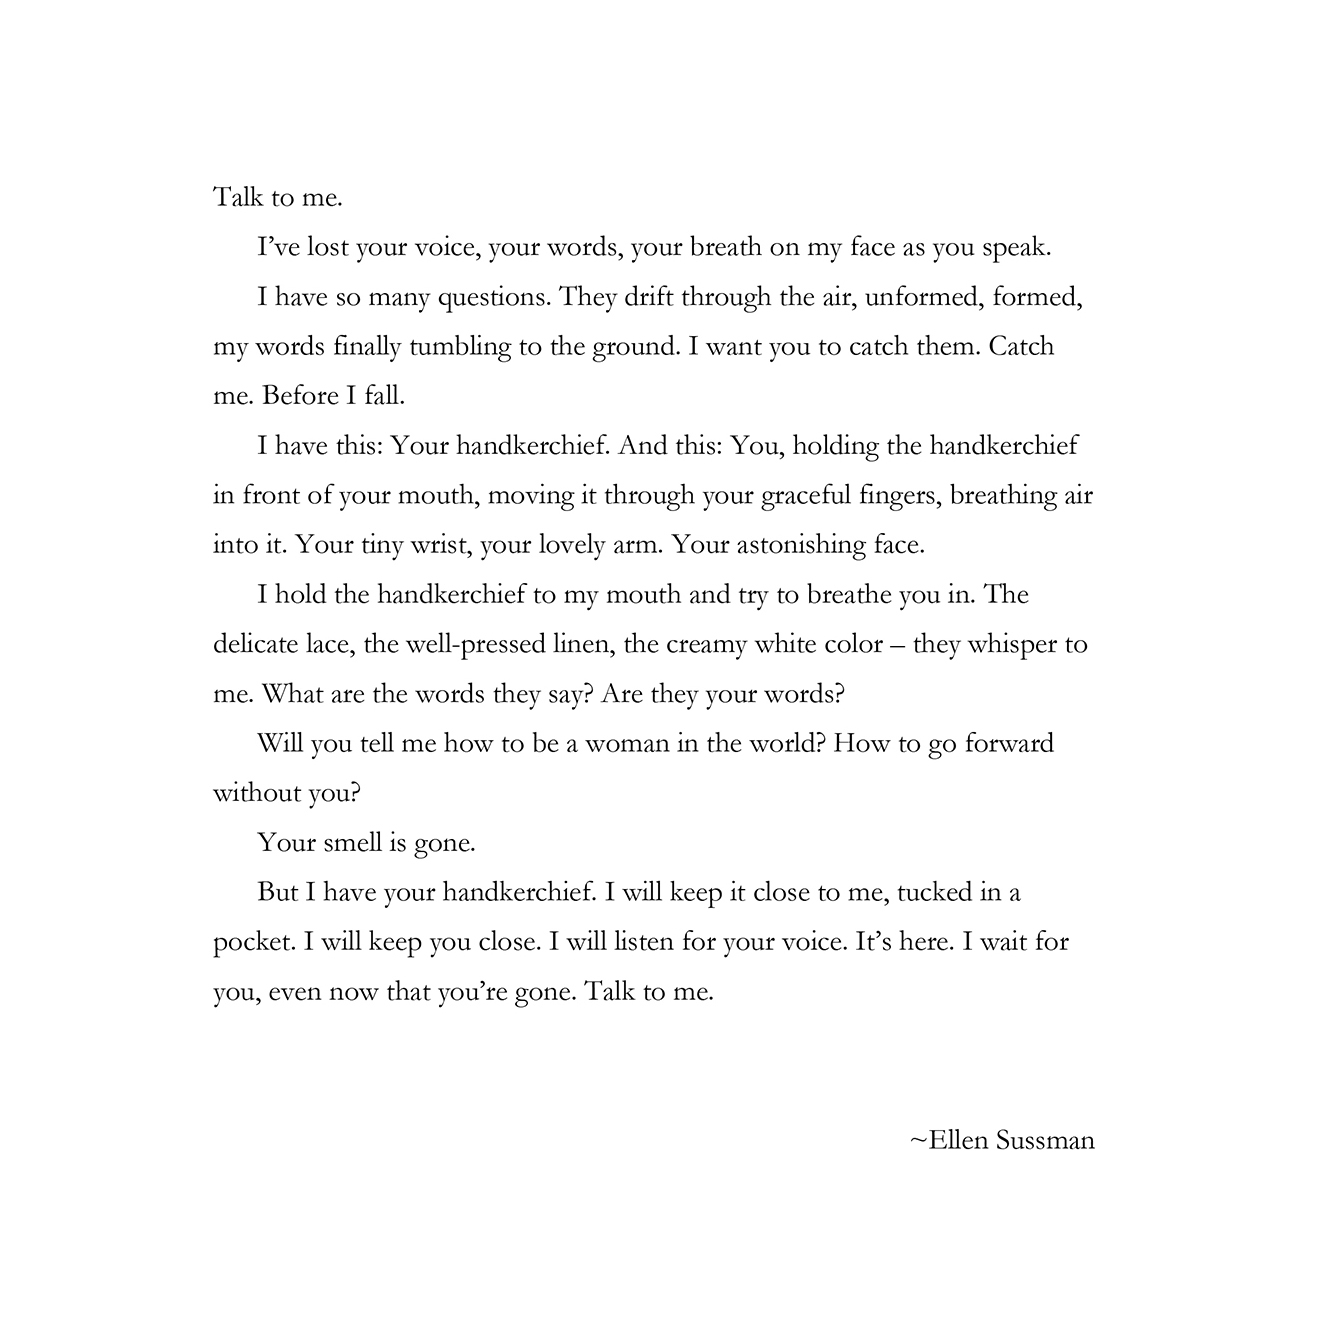 Talk to me by Ellen Sussman.jpg